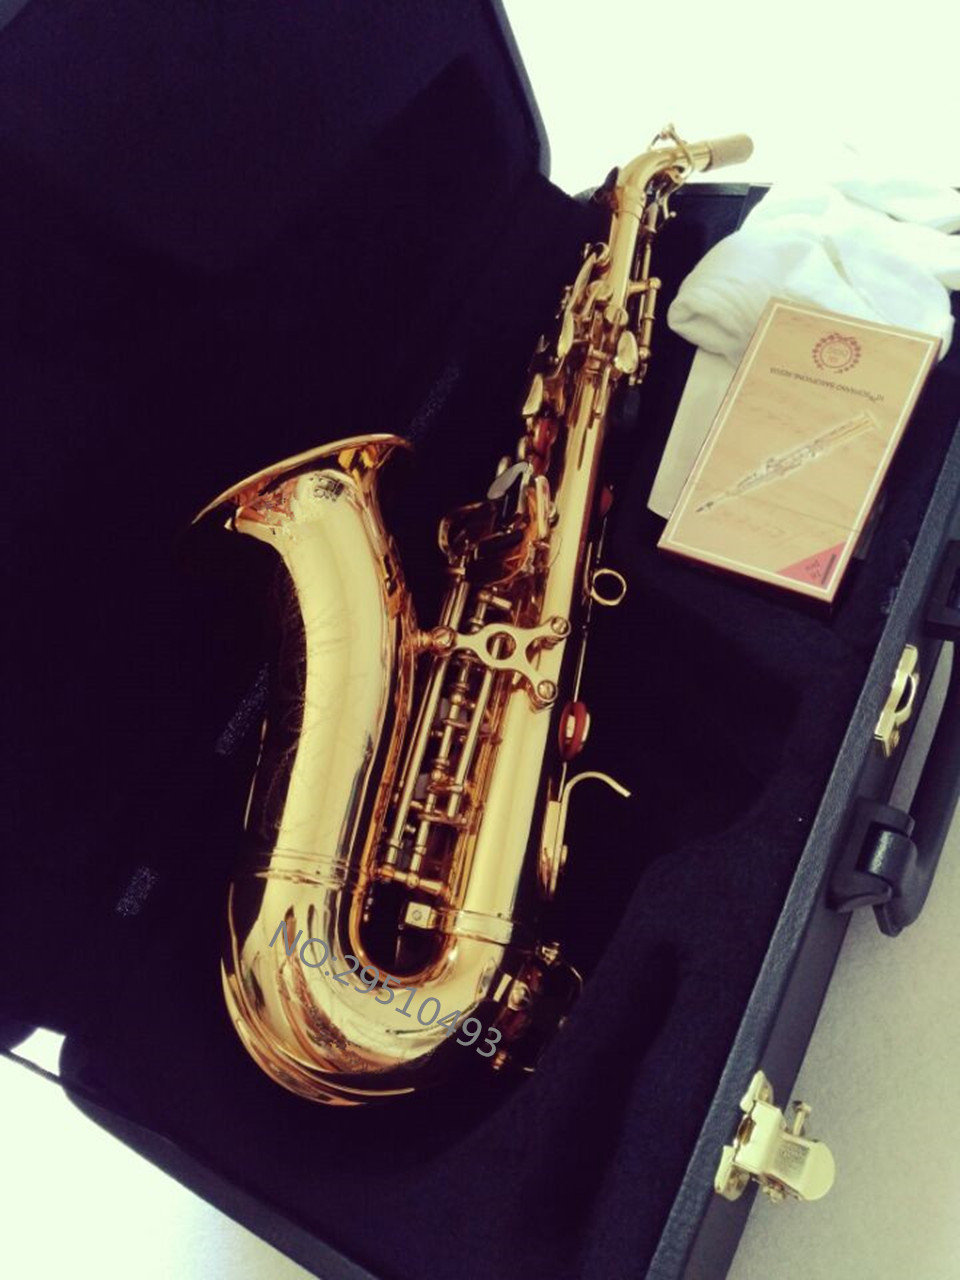 Curved Soprano Saxophone R54 Electrophoresis Gold Professional level Musical Instruments for childrens and Adults